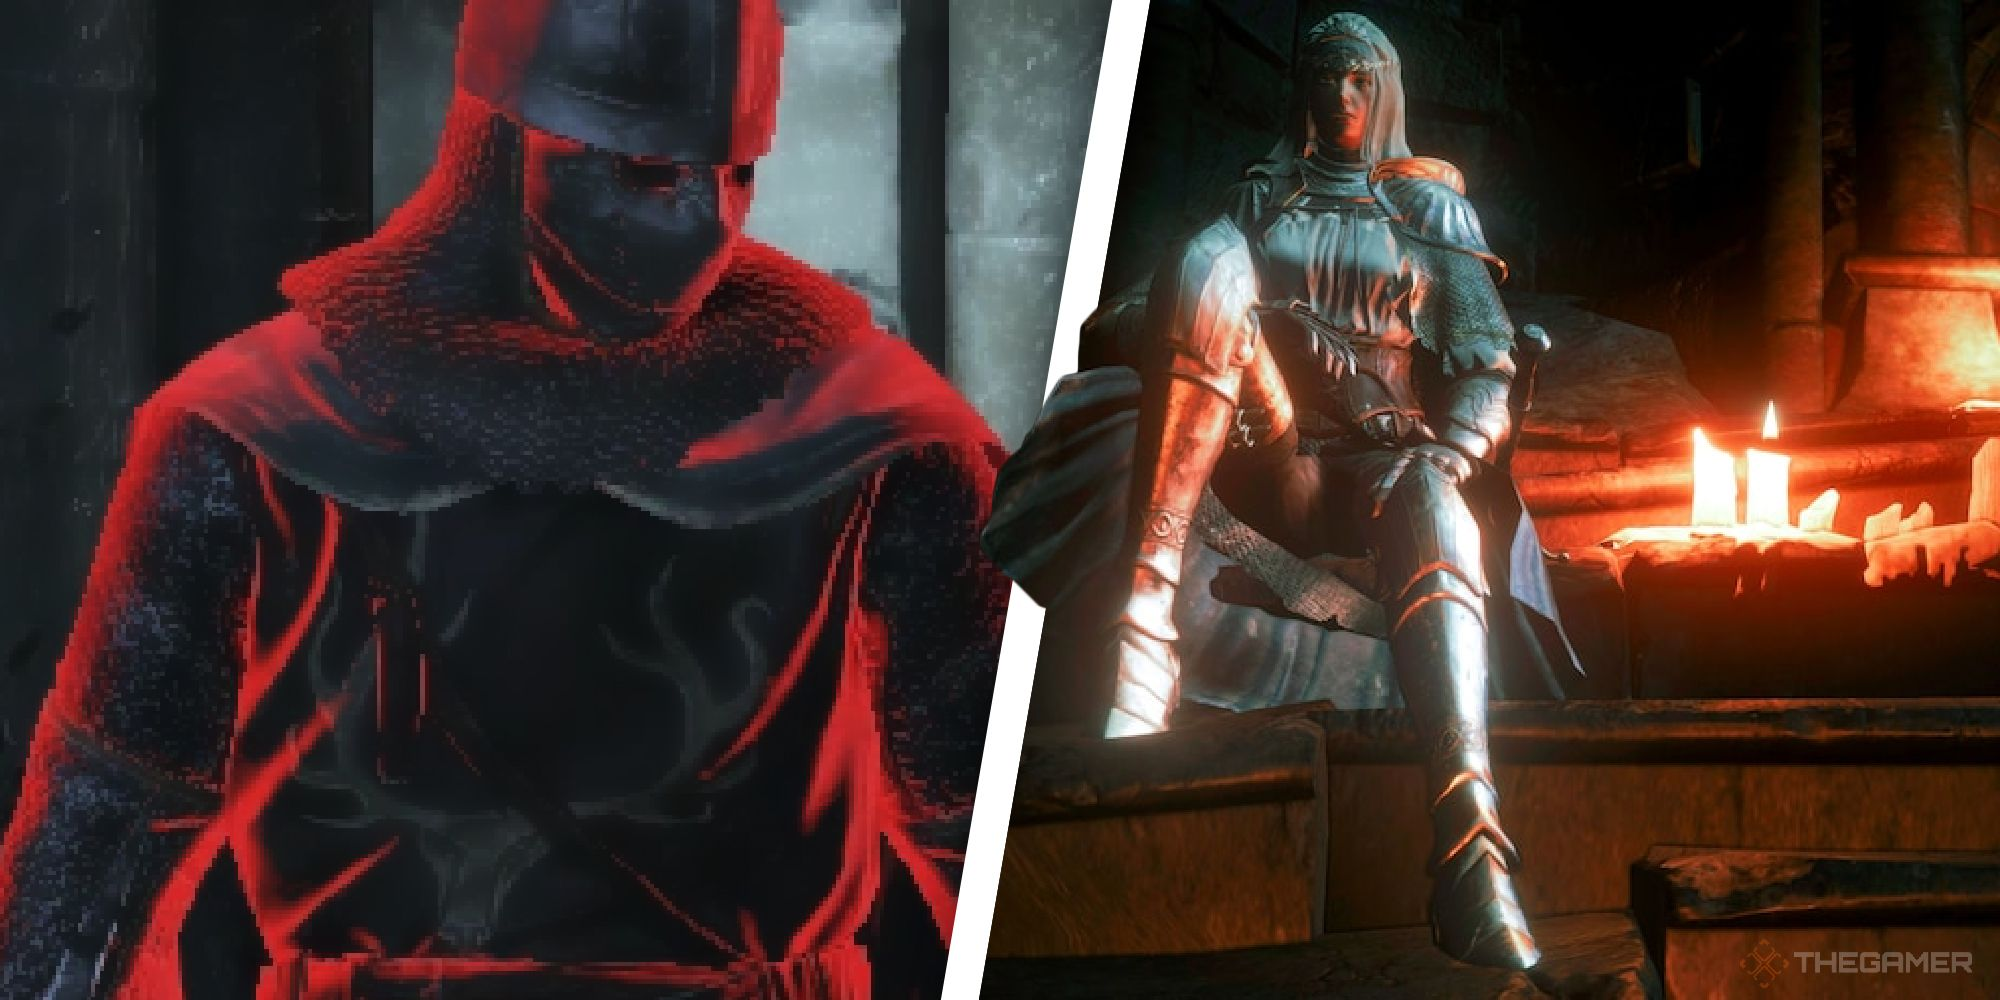 Dark Souls 3: Sirris Of The Sunless Realms Questline, una guía paso a paso